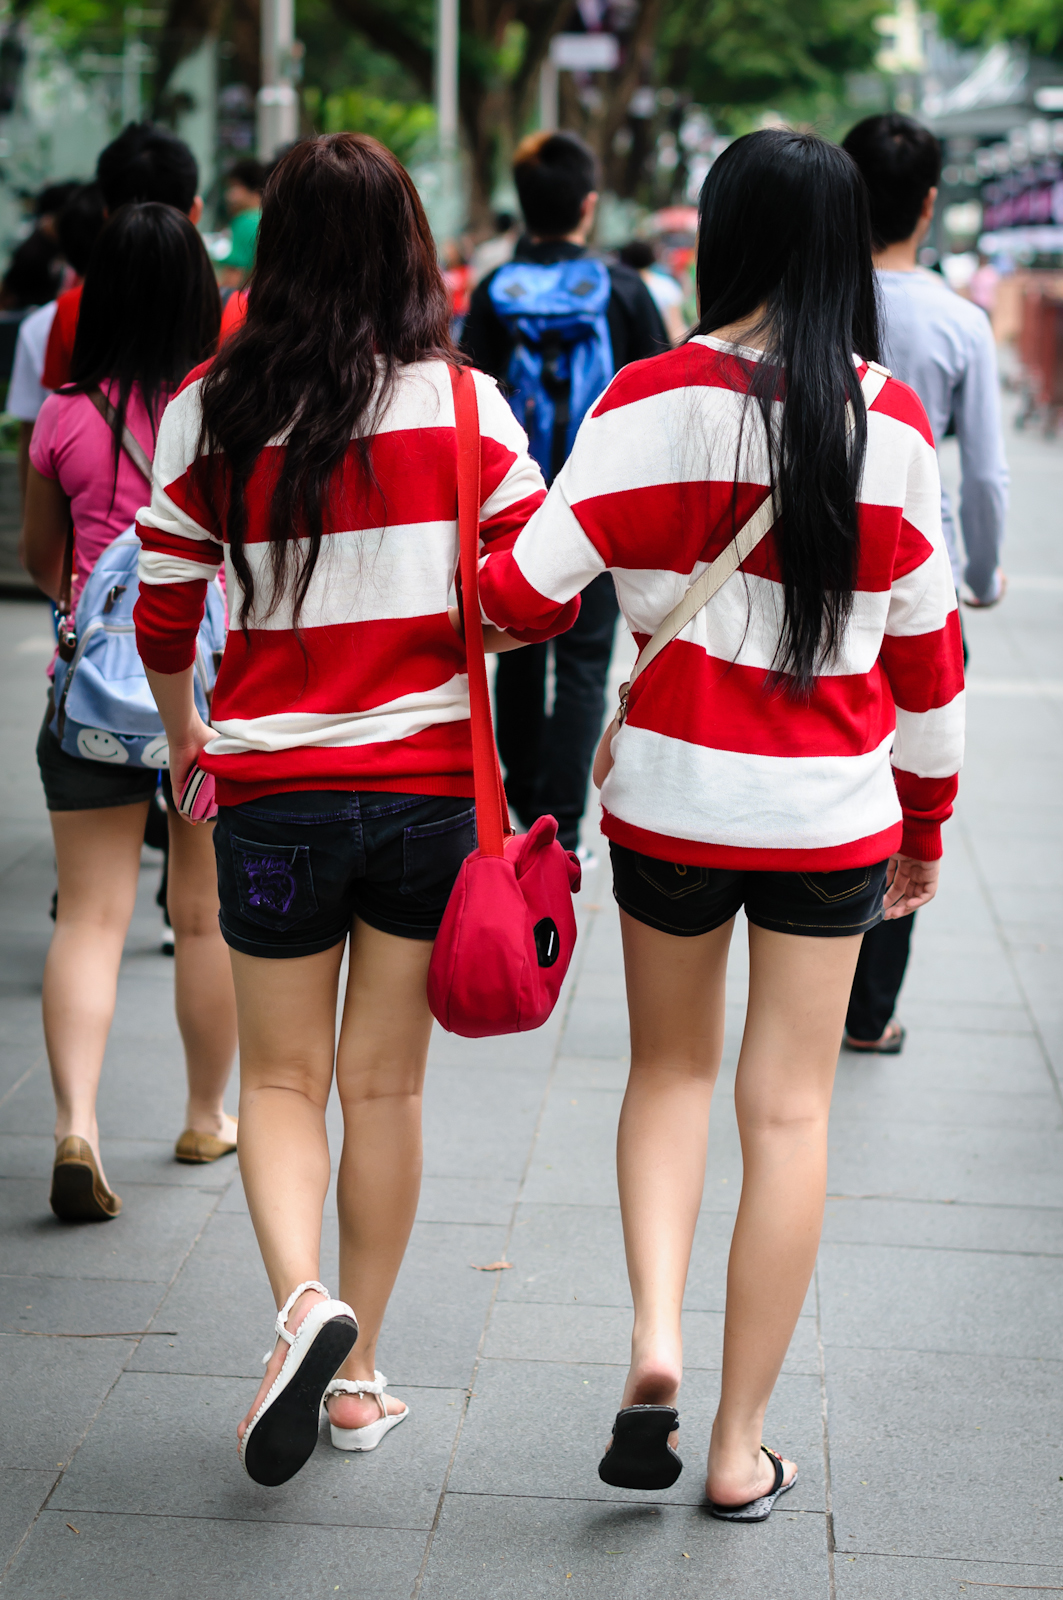 Street photography - two girls in red and white stripes holding hands